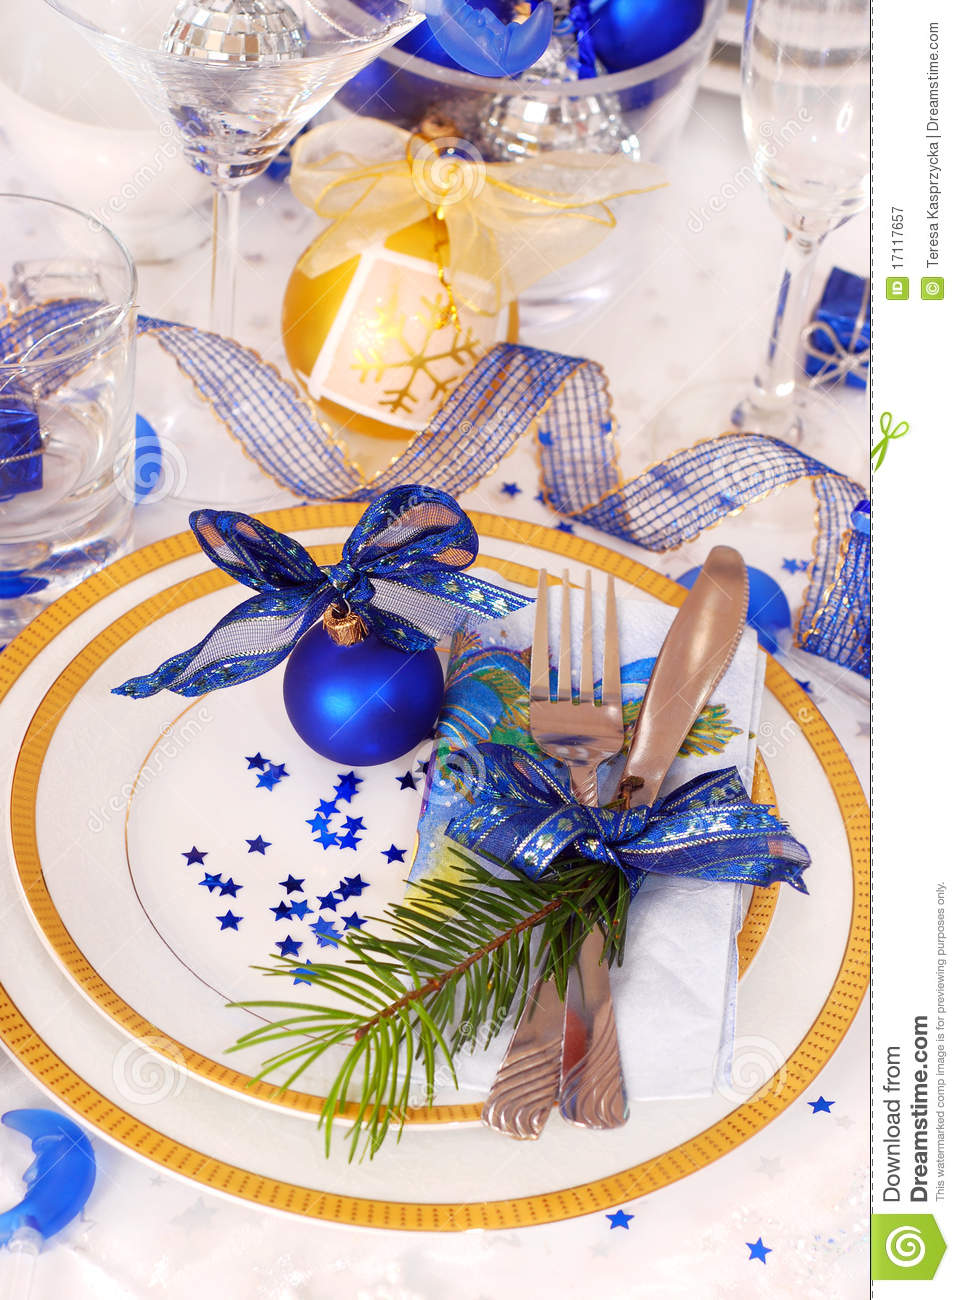 Christmas table setting in white and blue colors  sc 1 st  Dreamstime.com & Christmas Table Setting In White And Blue Colors Stock Image - Image ...